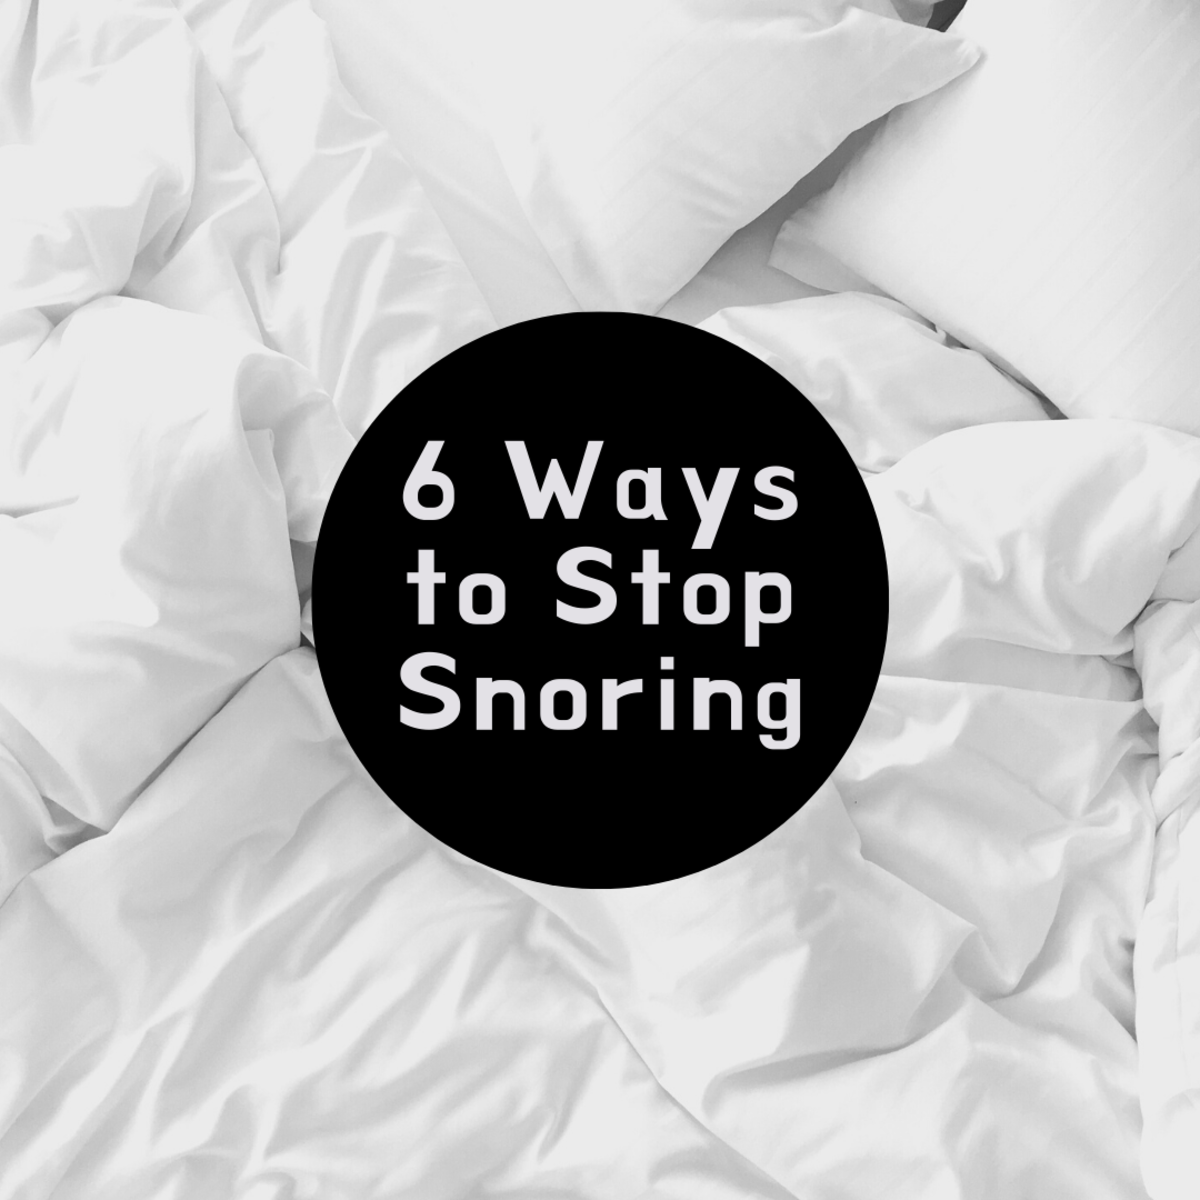 Want to Stop Snoring? 6 Ways to a Quiet Night's Sleep